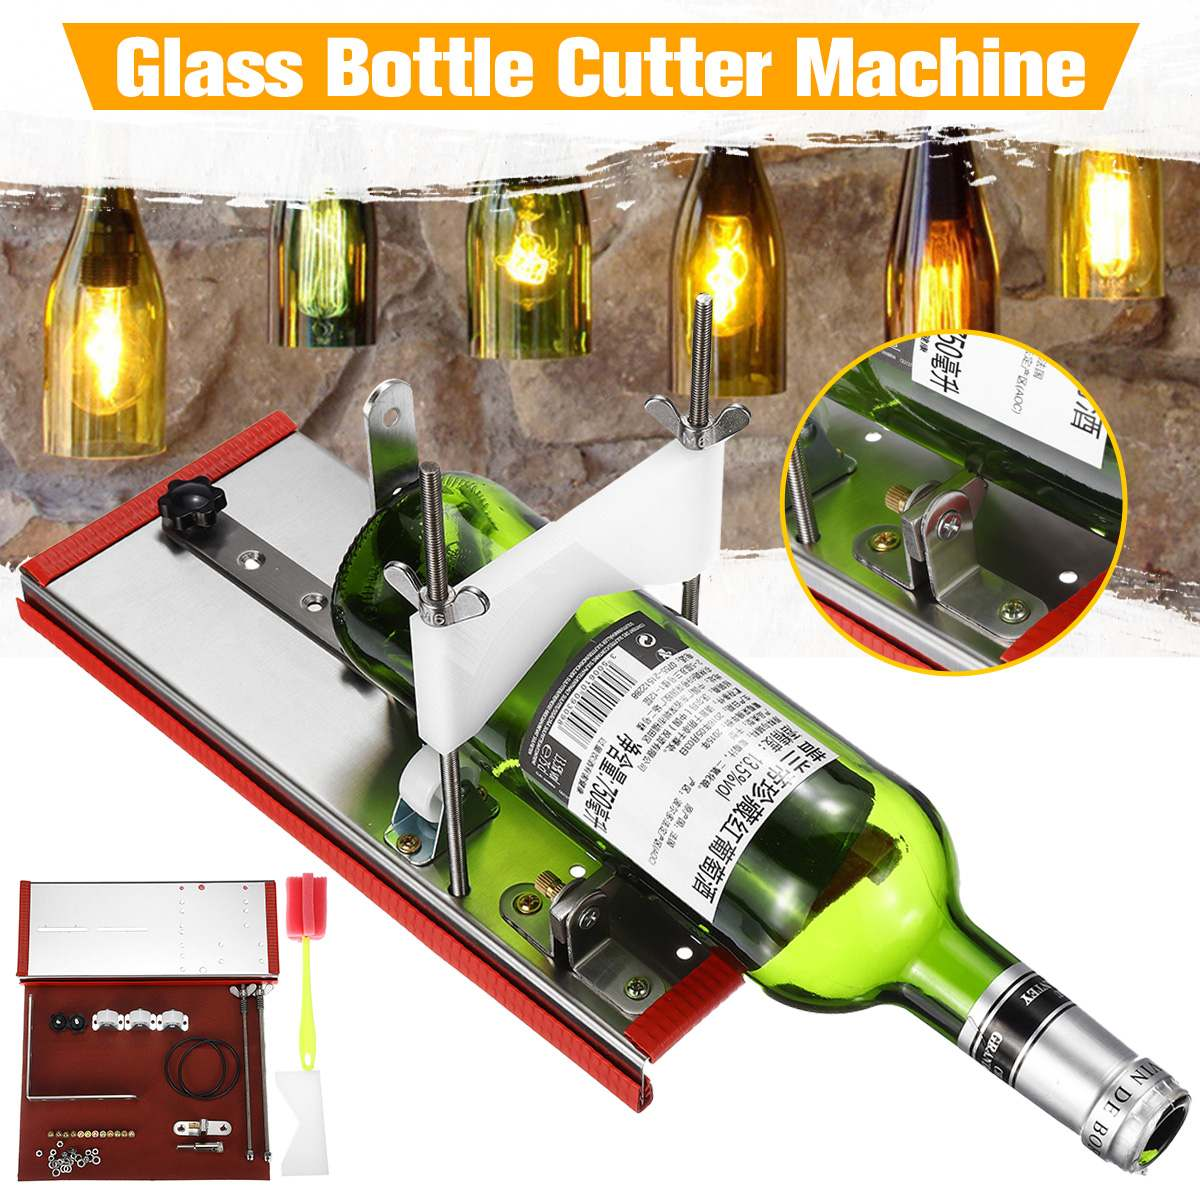 Glass Bottle Cutter Cutting Thickness 2-10mm Accurate Cutting Better Cutting Control DIY Recycle Cutting Tool Kit